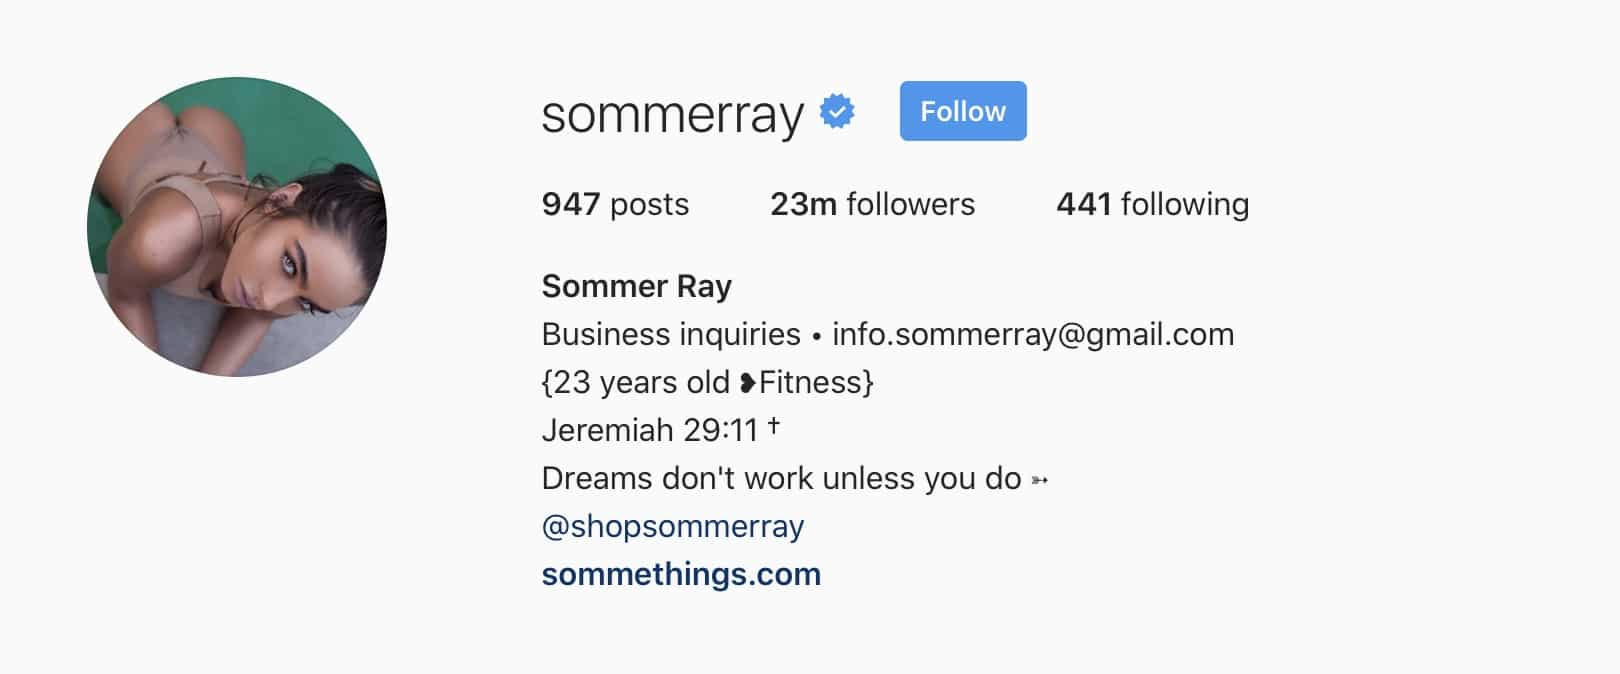 Sommerray Instagram